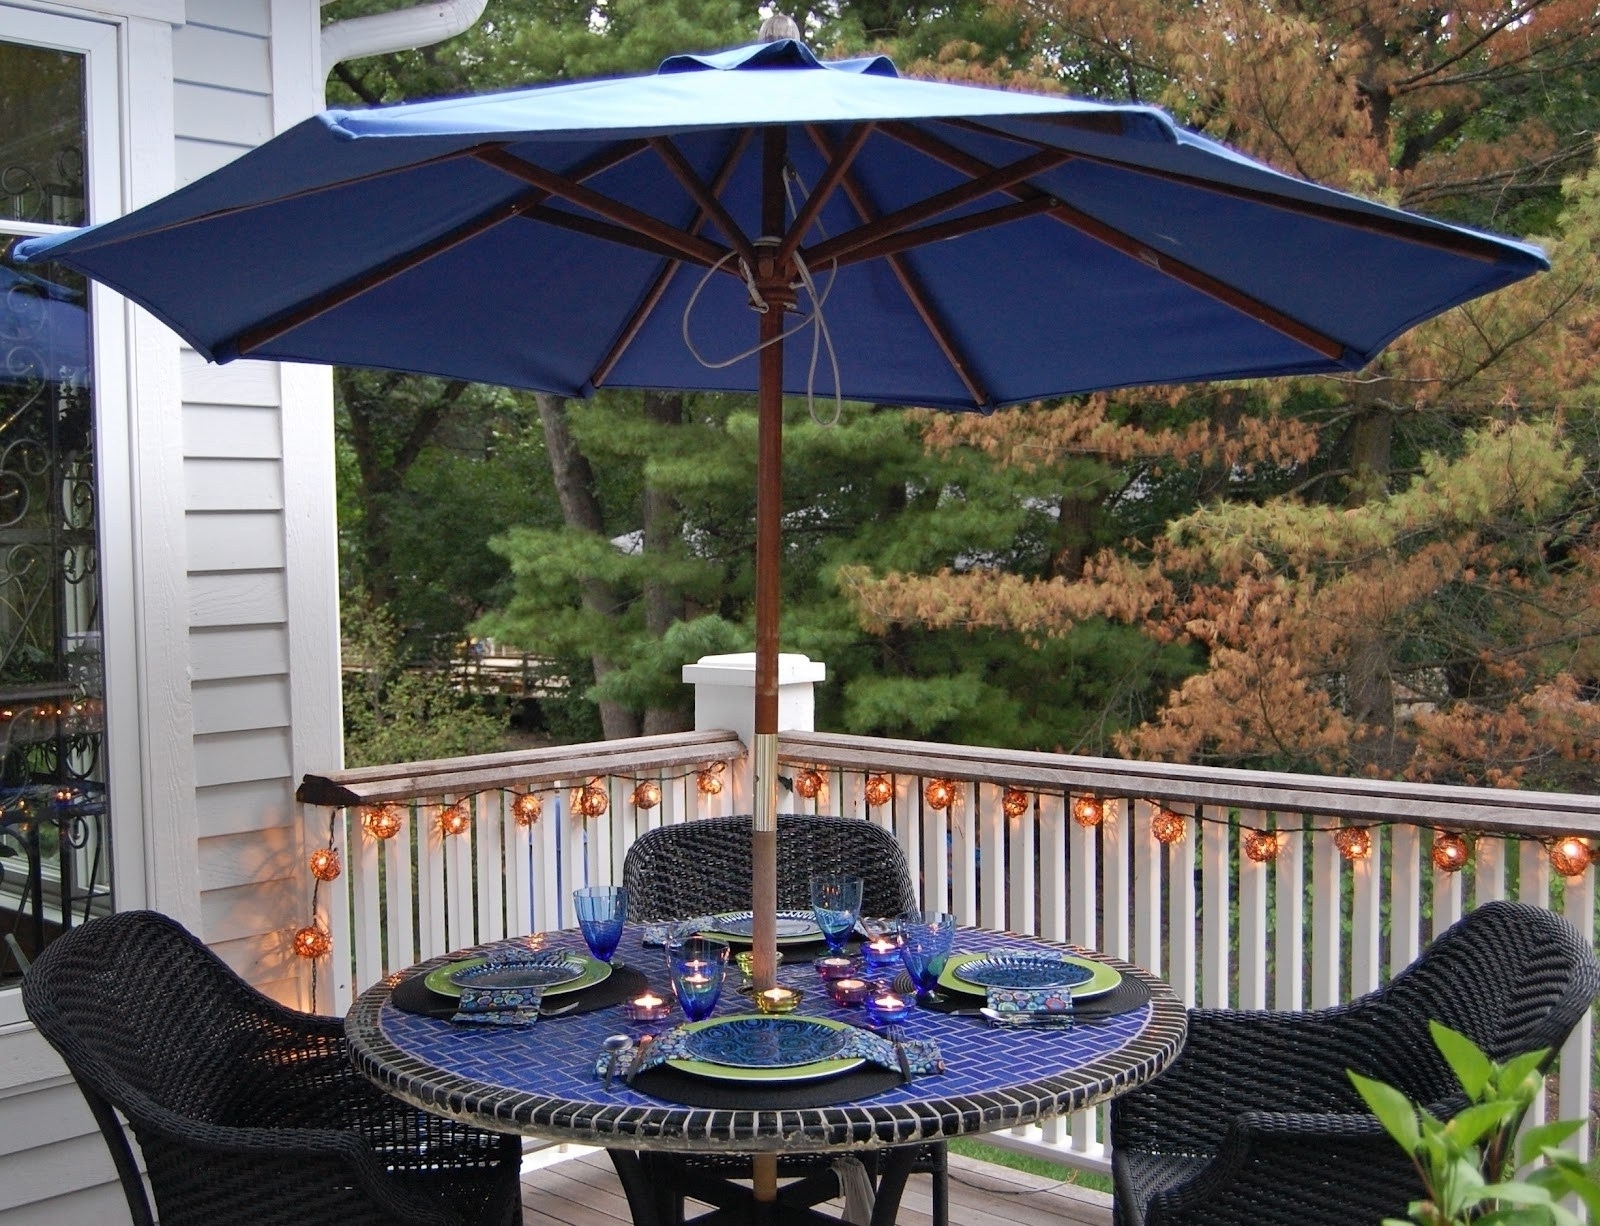 Current Small Patio Tables With Umbrellas Hole Intended For Small Patio Table With Chairs Balcony And Large Umbrella Hole Tables (View 10 of 20)